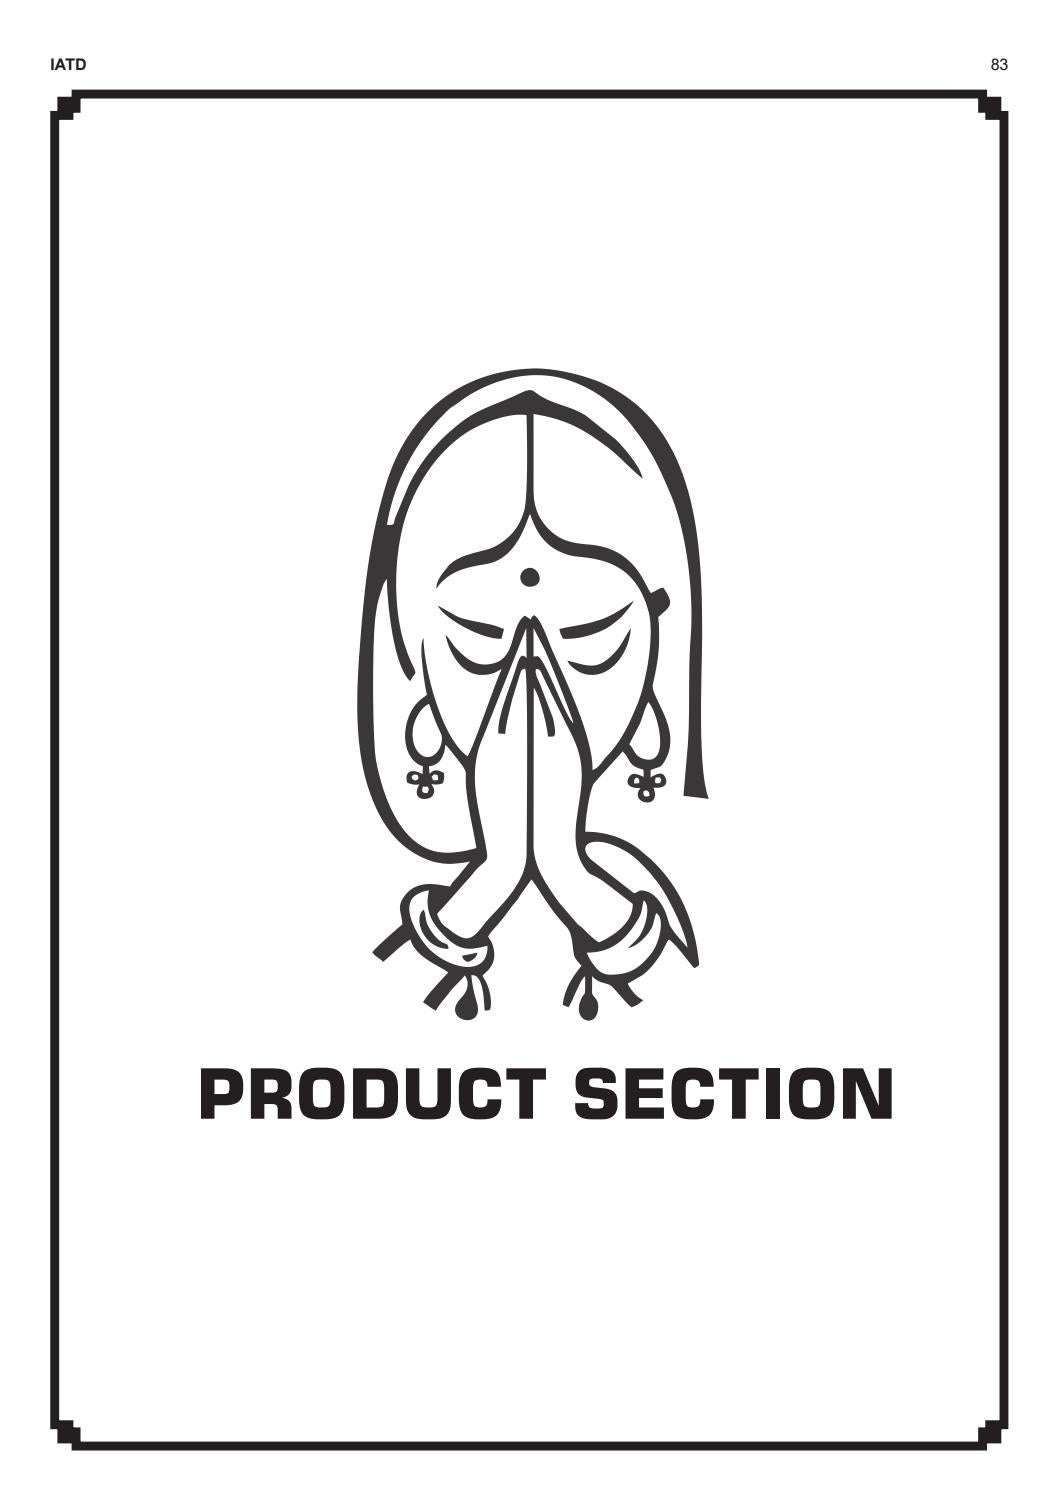 Indian Apparel and Textile Directory product section 6th